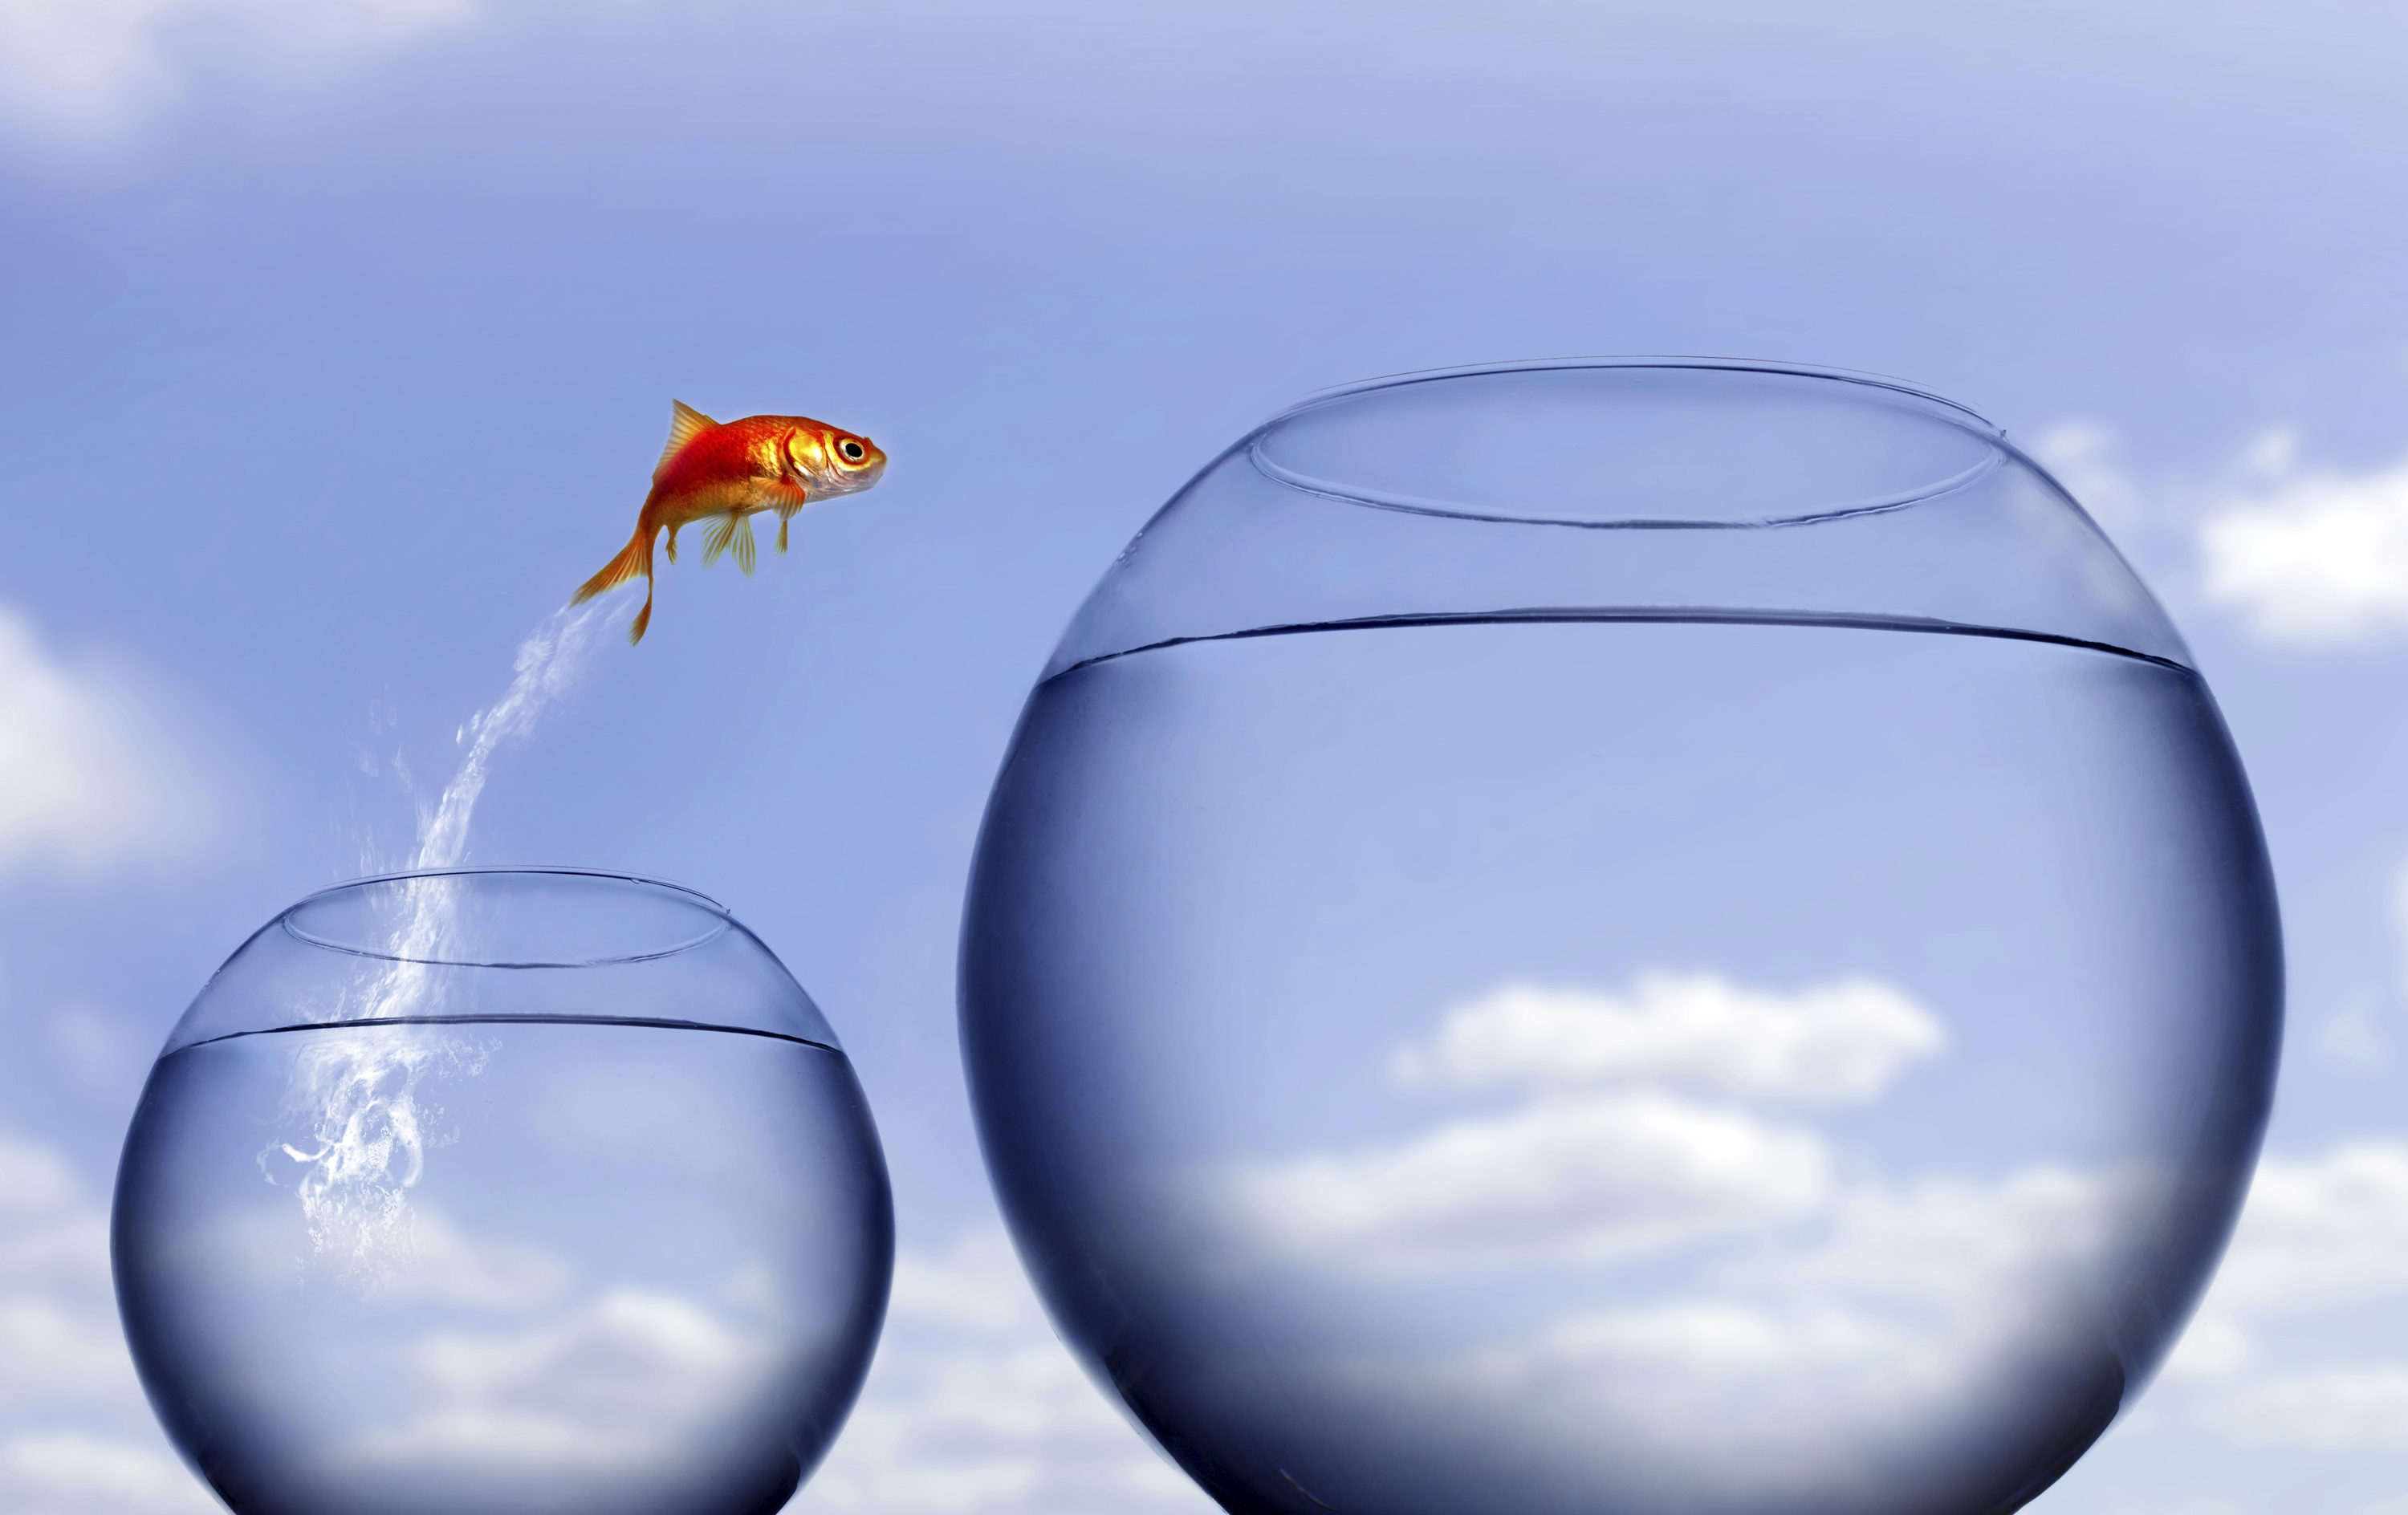 Image of a goldfish jumping out of a small bowl into a bigger bowl